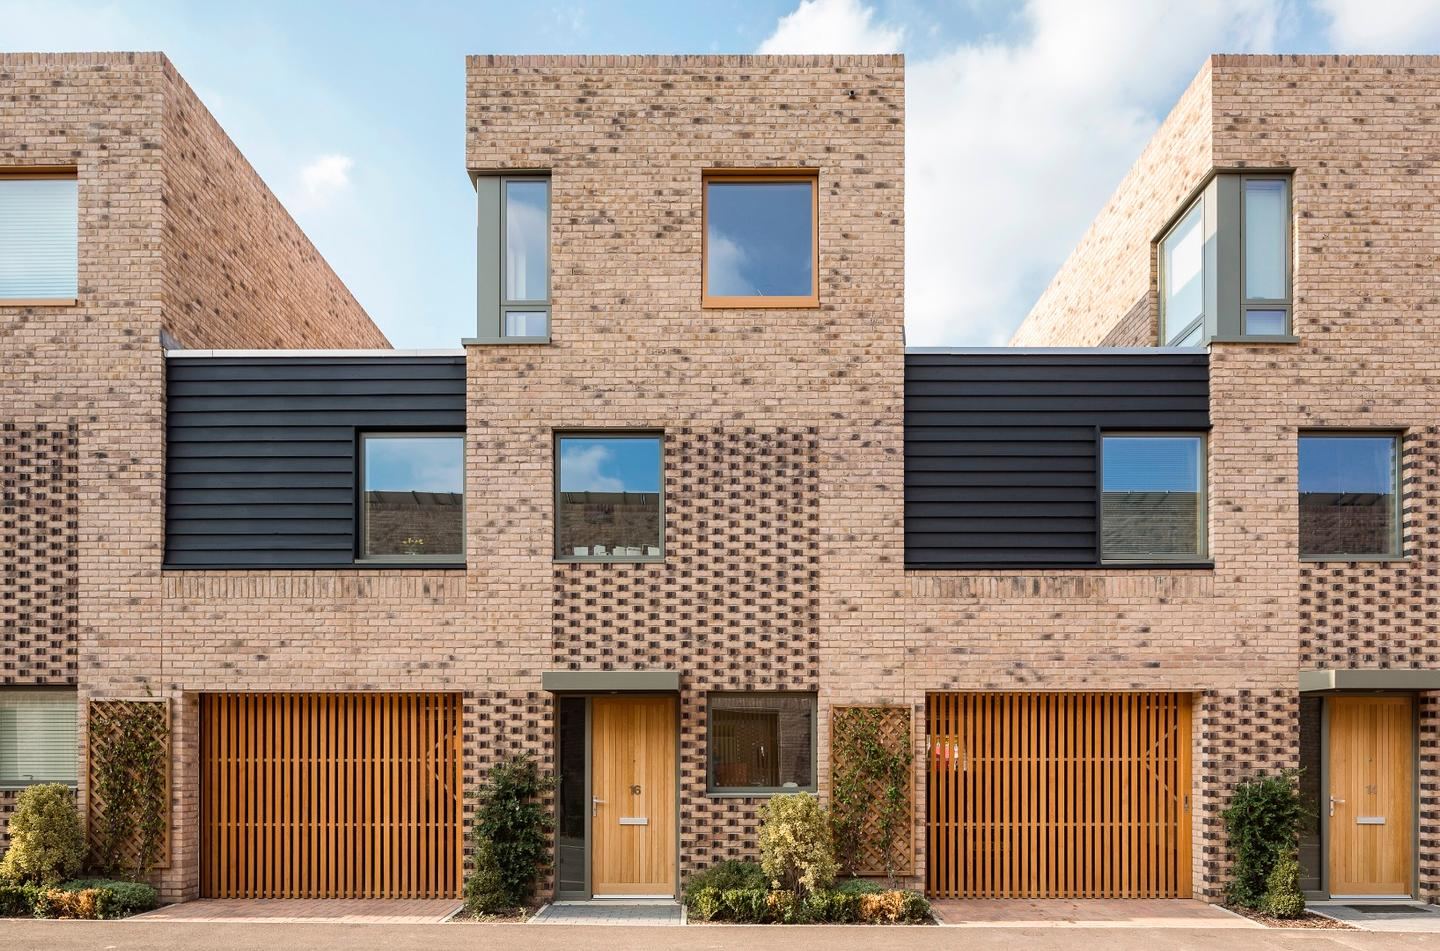 Abode, Great Kneighton, by Proctor and Matthews Architects, is a 300 unit housing project